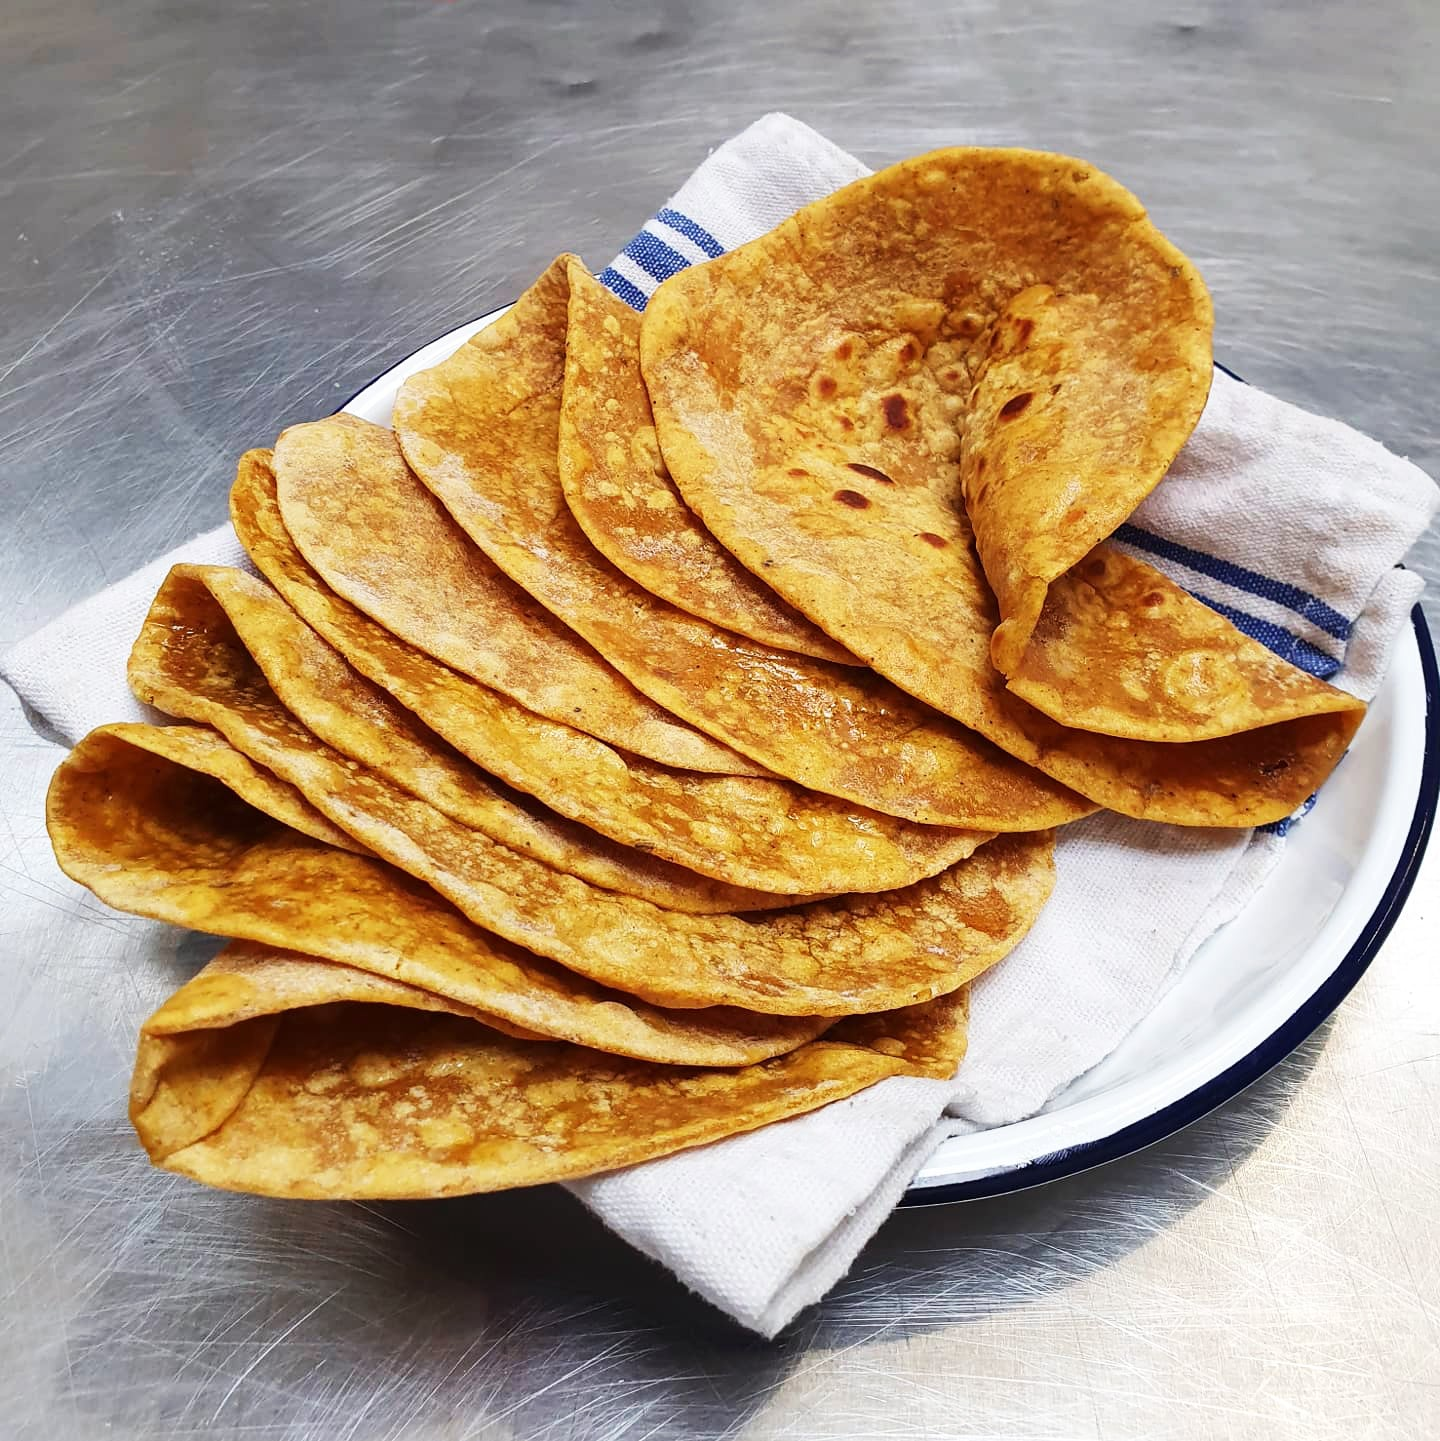 DIY Roti Kit - Make your own flatbreads at home